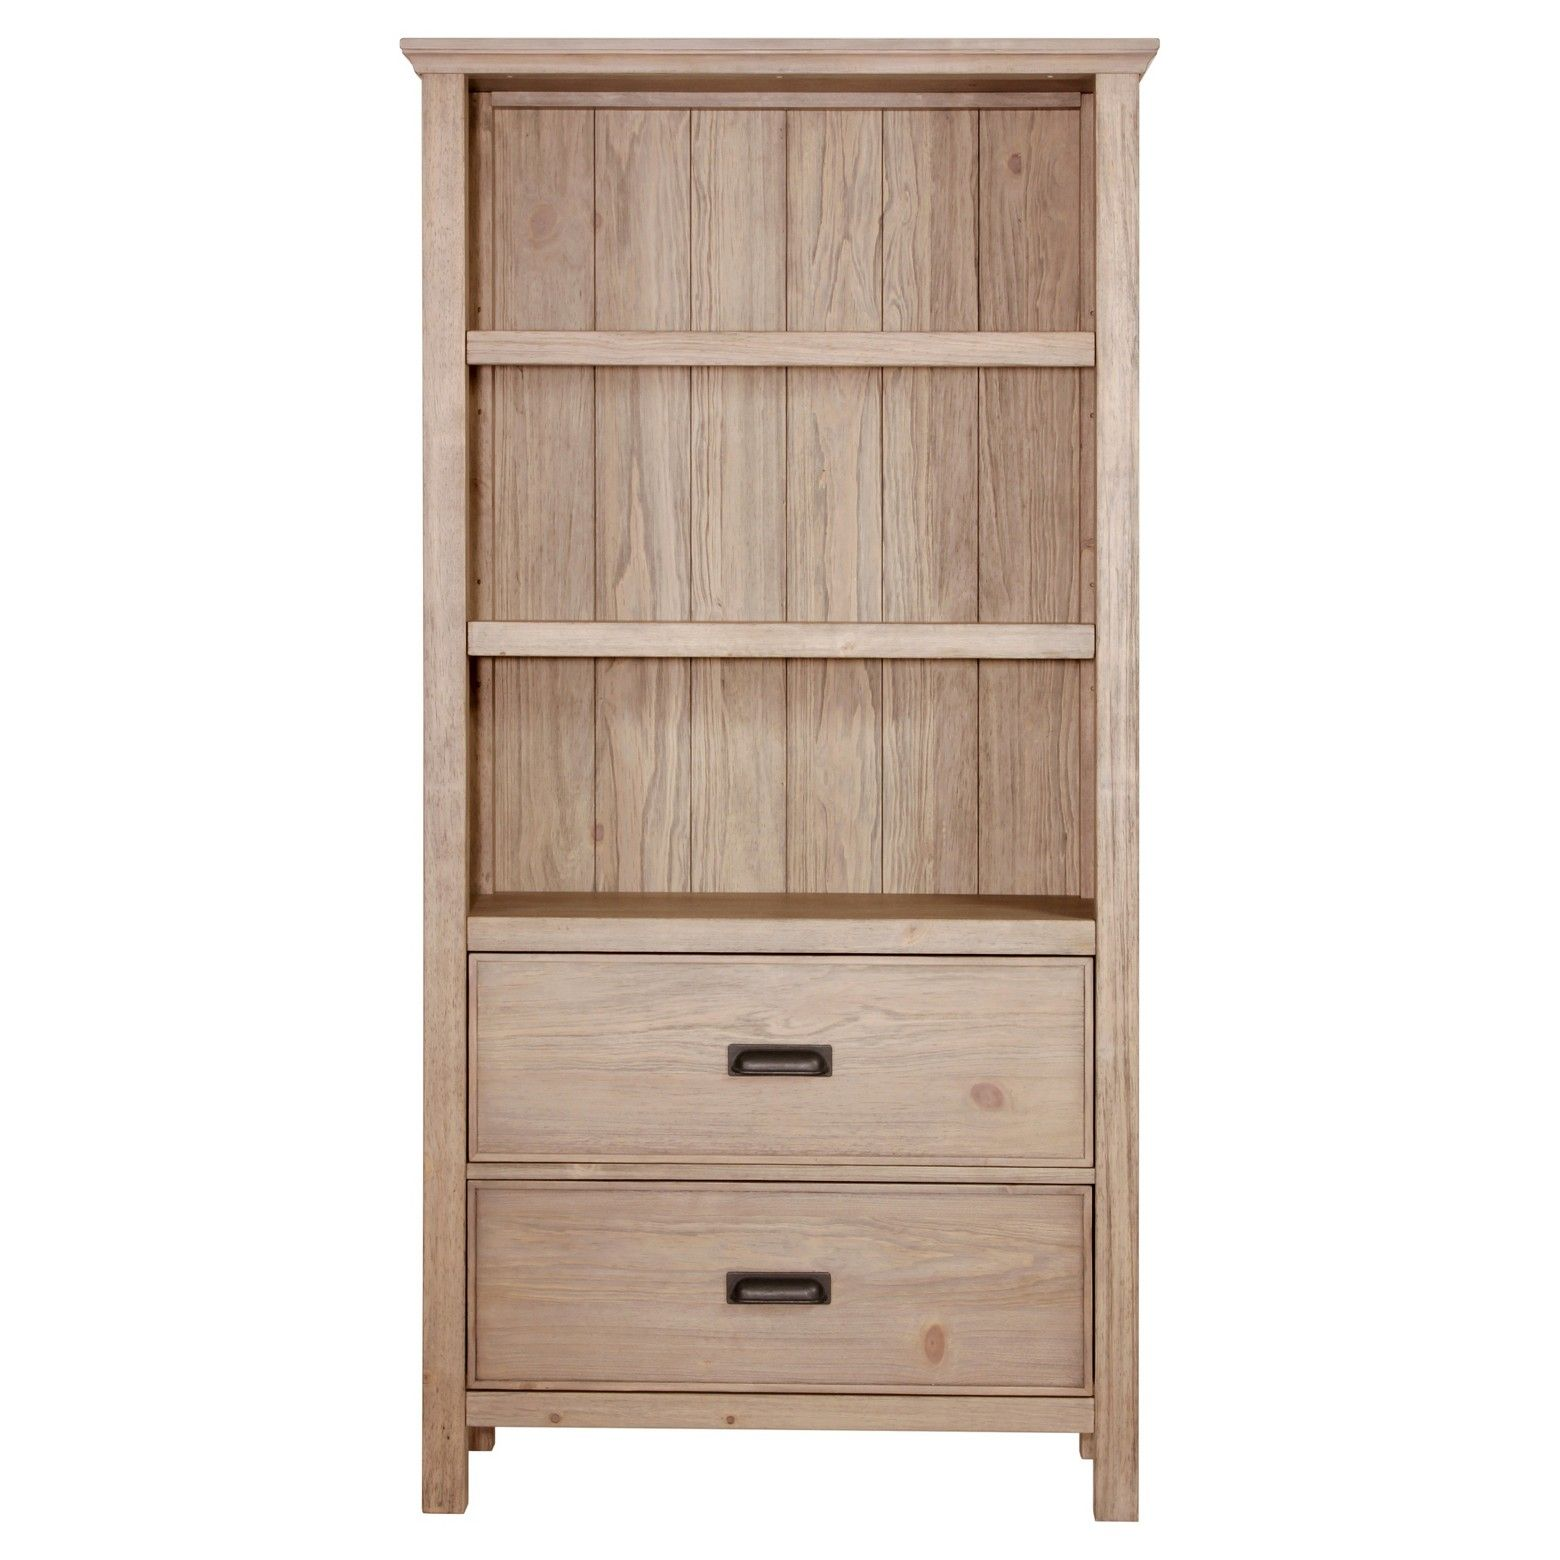 The Threshold Gilford 2 Drawer Bookcase Offers The Perfect Storage Solution With 2 Drawers And Ope Bookcase With Drawers Bookcase Storage Contemporary Bookcase